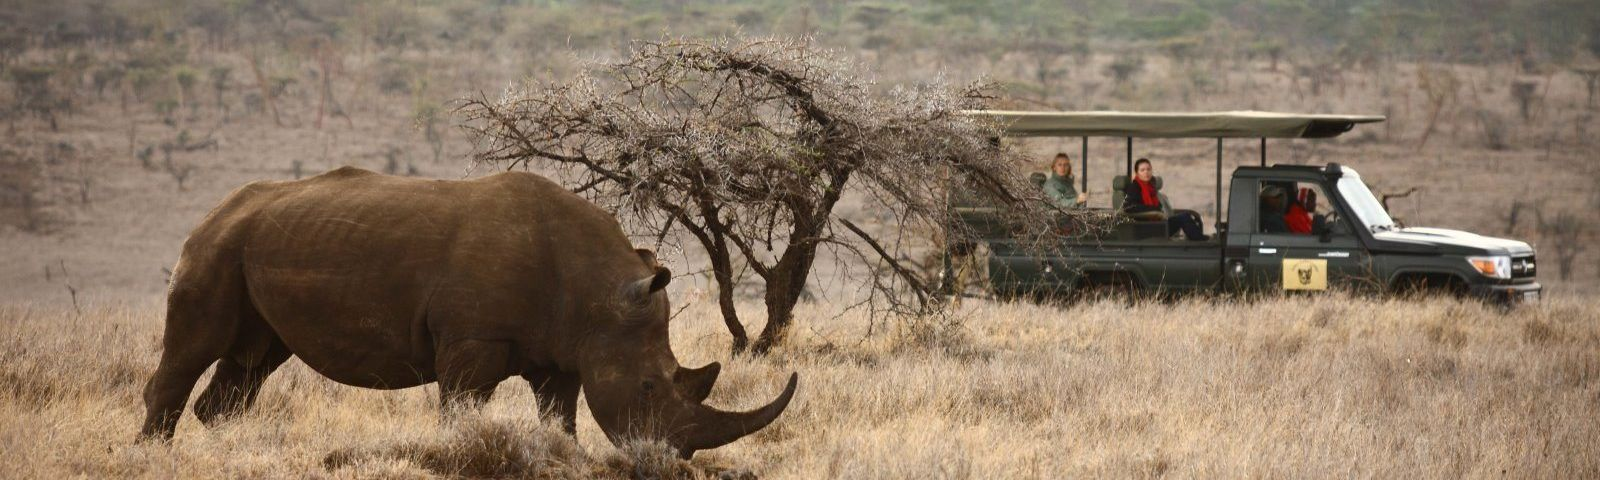 Top 10 Things To Do in Kenya - wildlife safari in Lewa